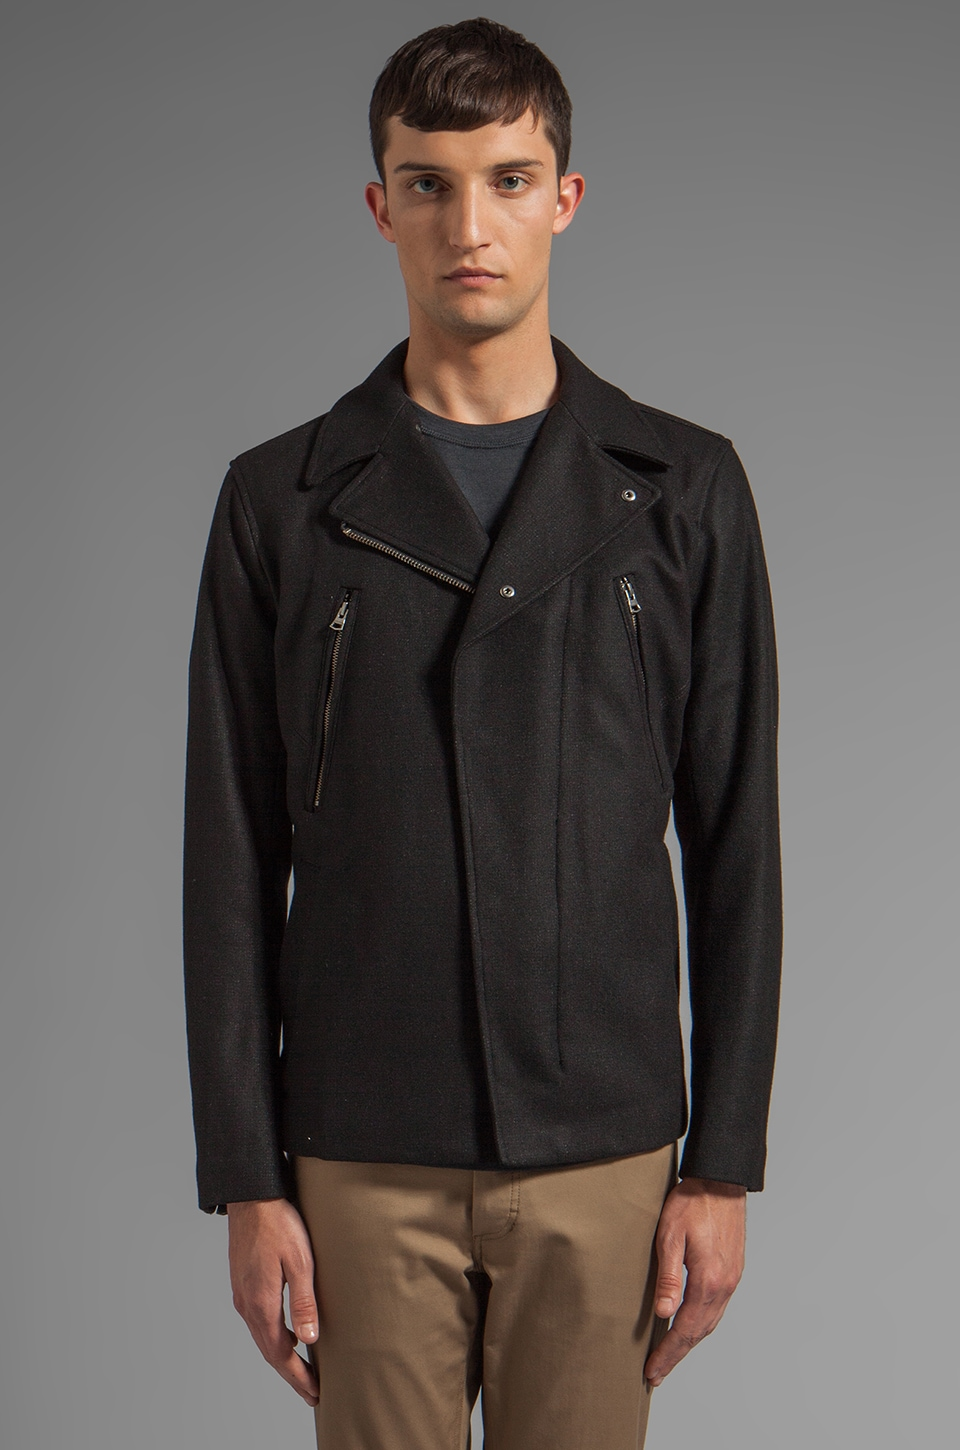 Theory Derwing Jacket in Black Multi